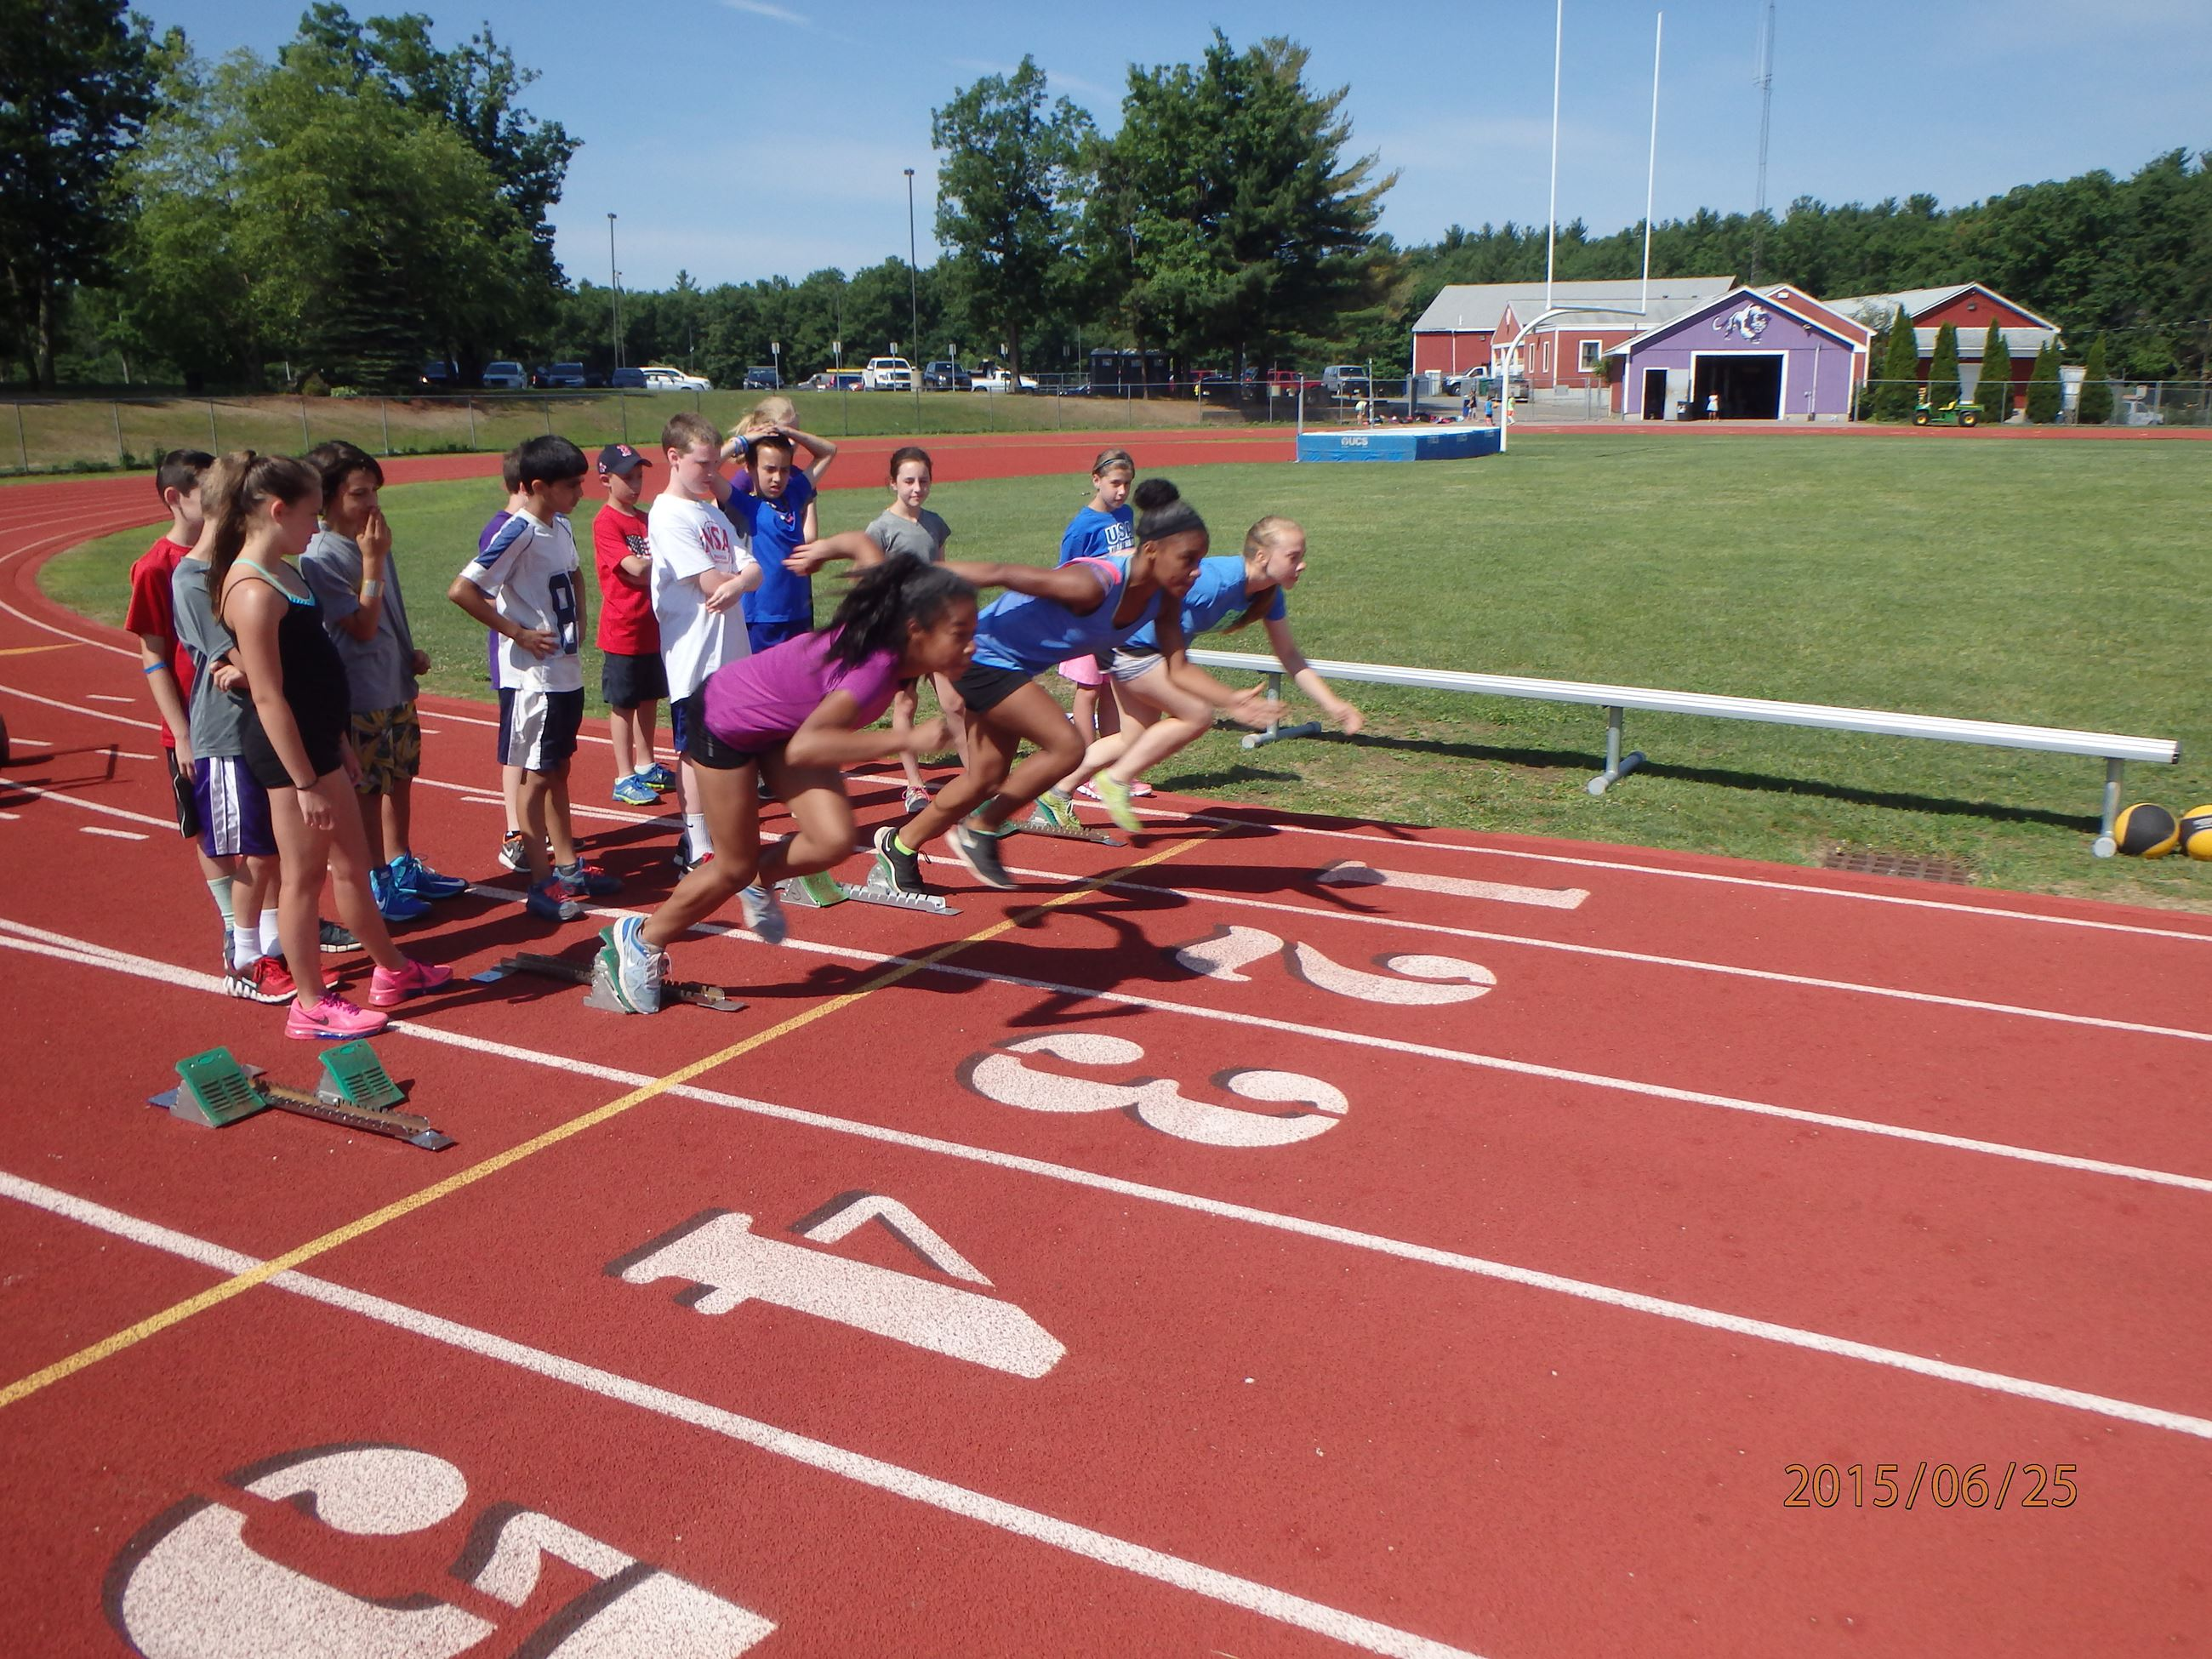 Track and Field Camp runners starting a race.